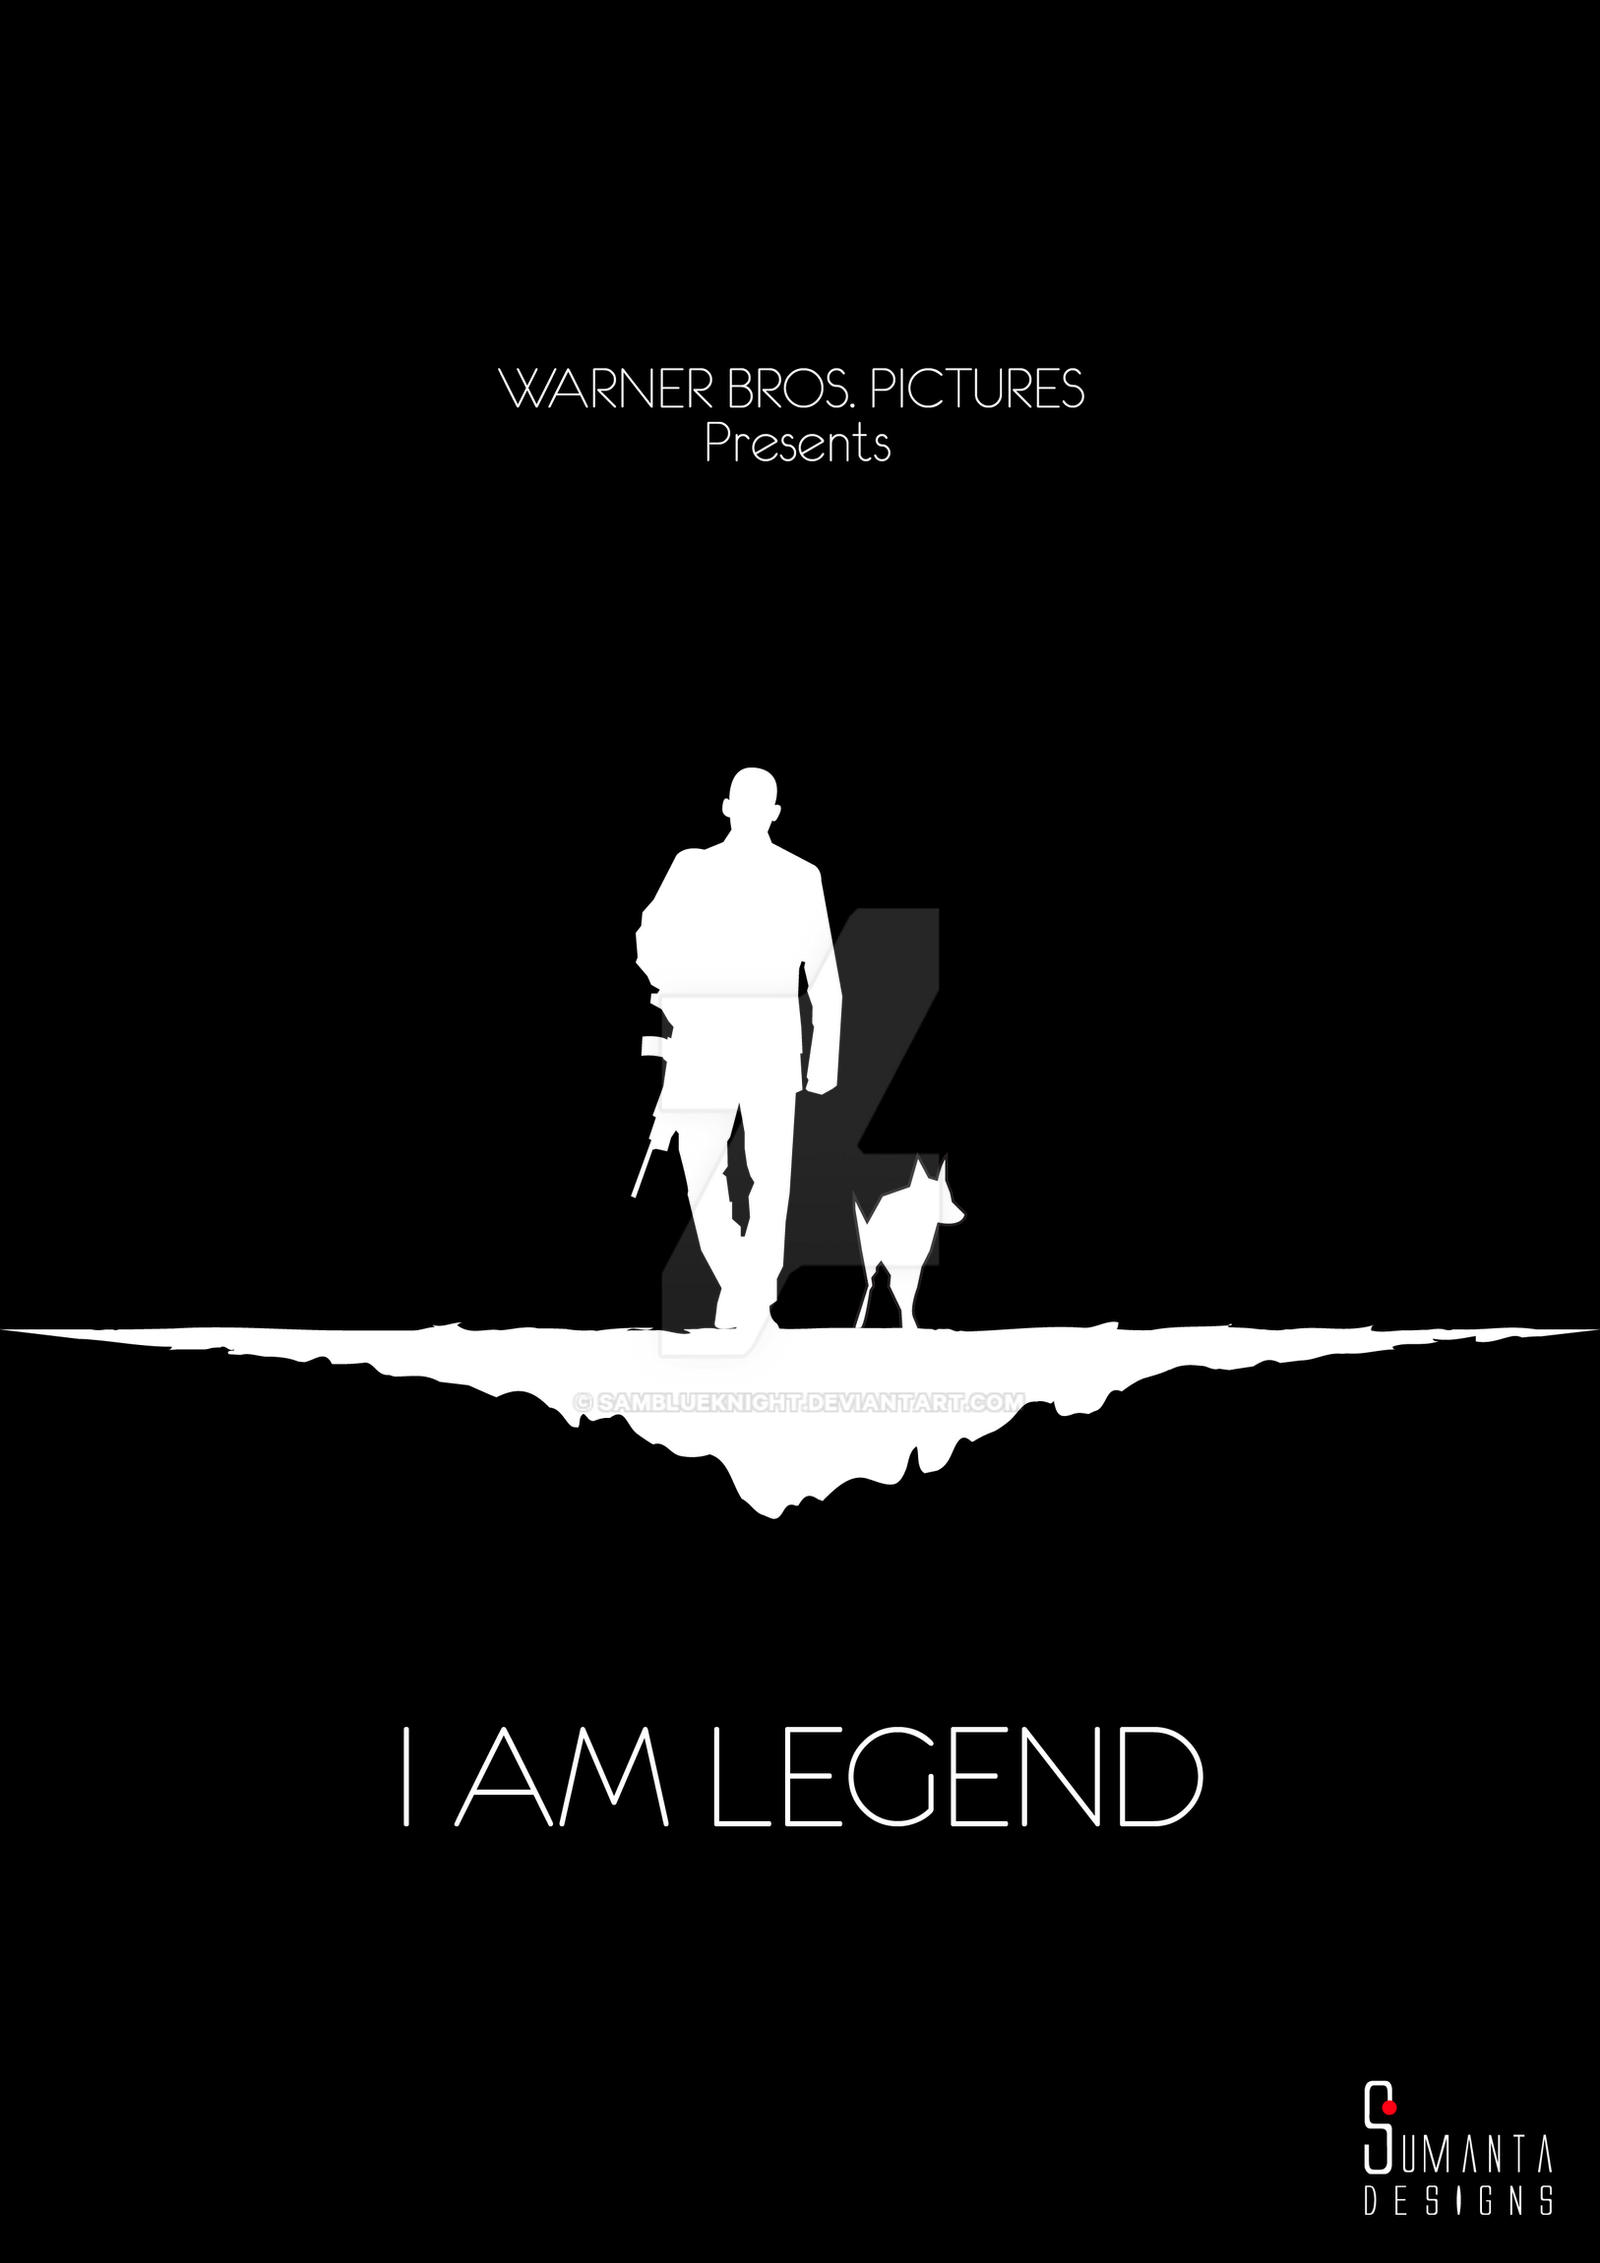 i am legend analyses The film, i am legend is a post-apocalyptic science fiction film directed by francis lawrence and starring will smith it was released on december 14th, 2007 this film is actually the third adaptation of richard matheson's novel of the same name from 1954.